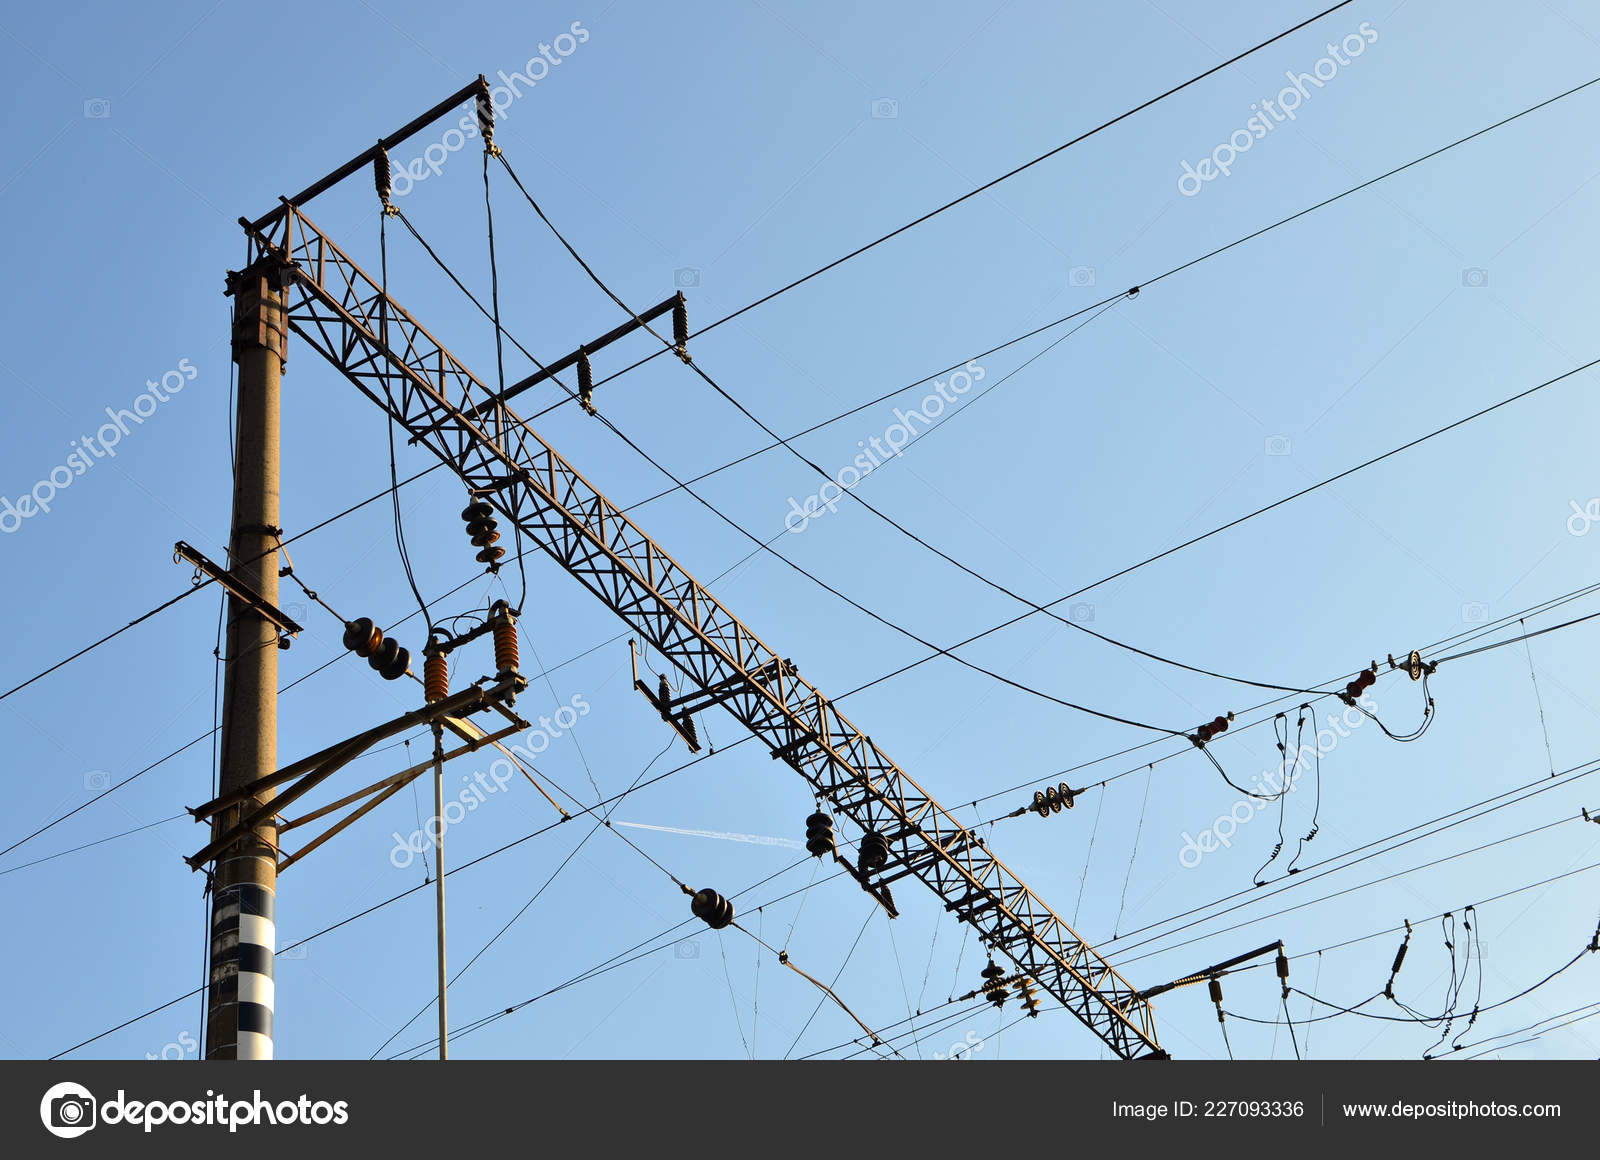 hight resolution of a pole with electrical wires high voltage power lines